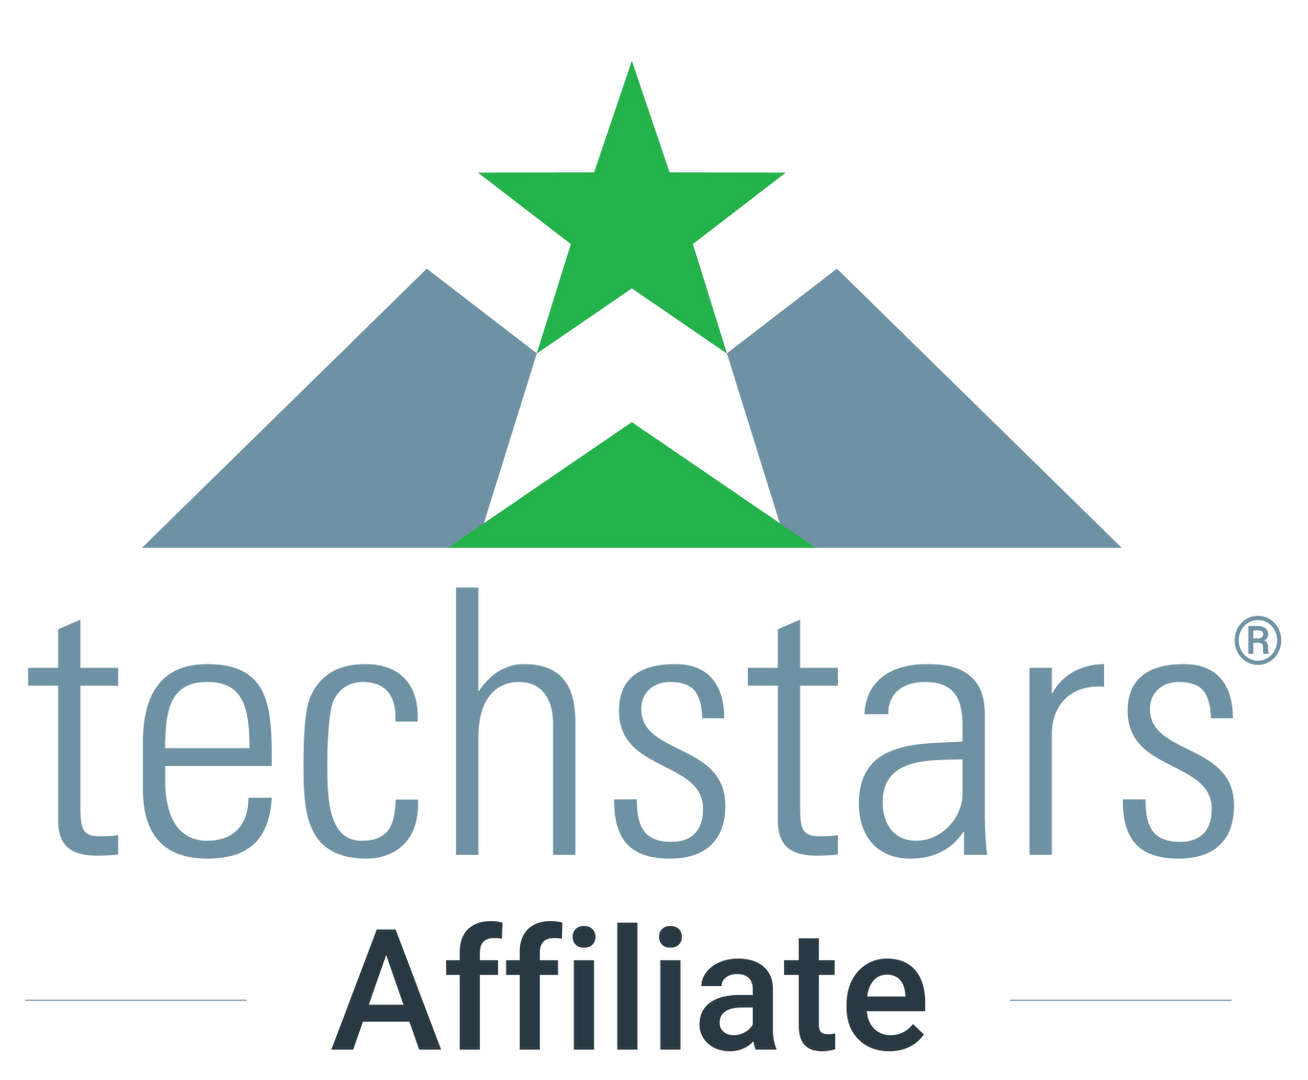 Headquartered in Boulder, Colorado and with an applicant acceptance rate of less than 1%, Techstars has powered the formation of 1600 companies with a combined market cap of $18.2B